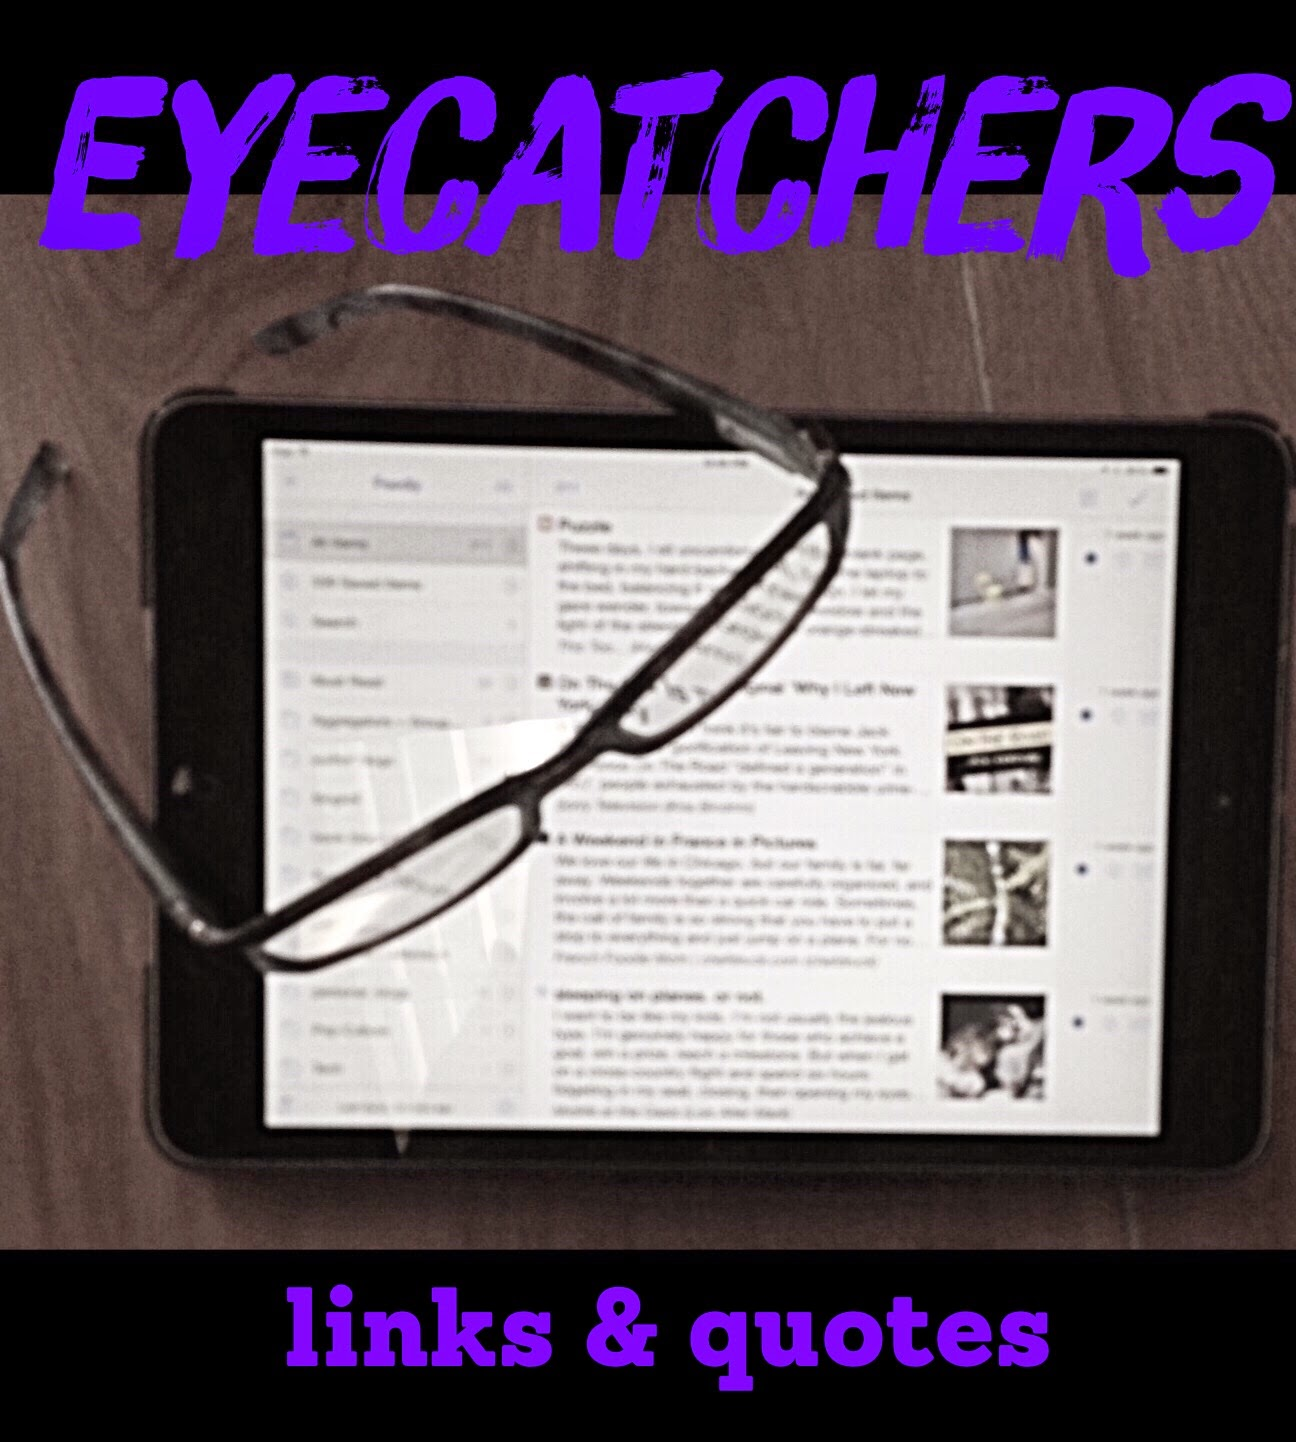 Sunday Salon, December 7: Eyecatchers Edition